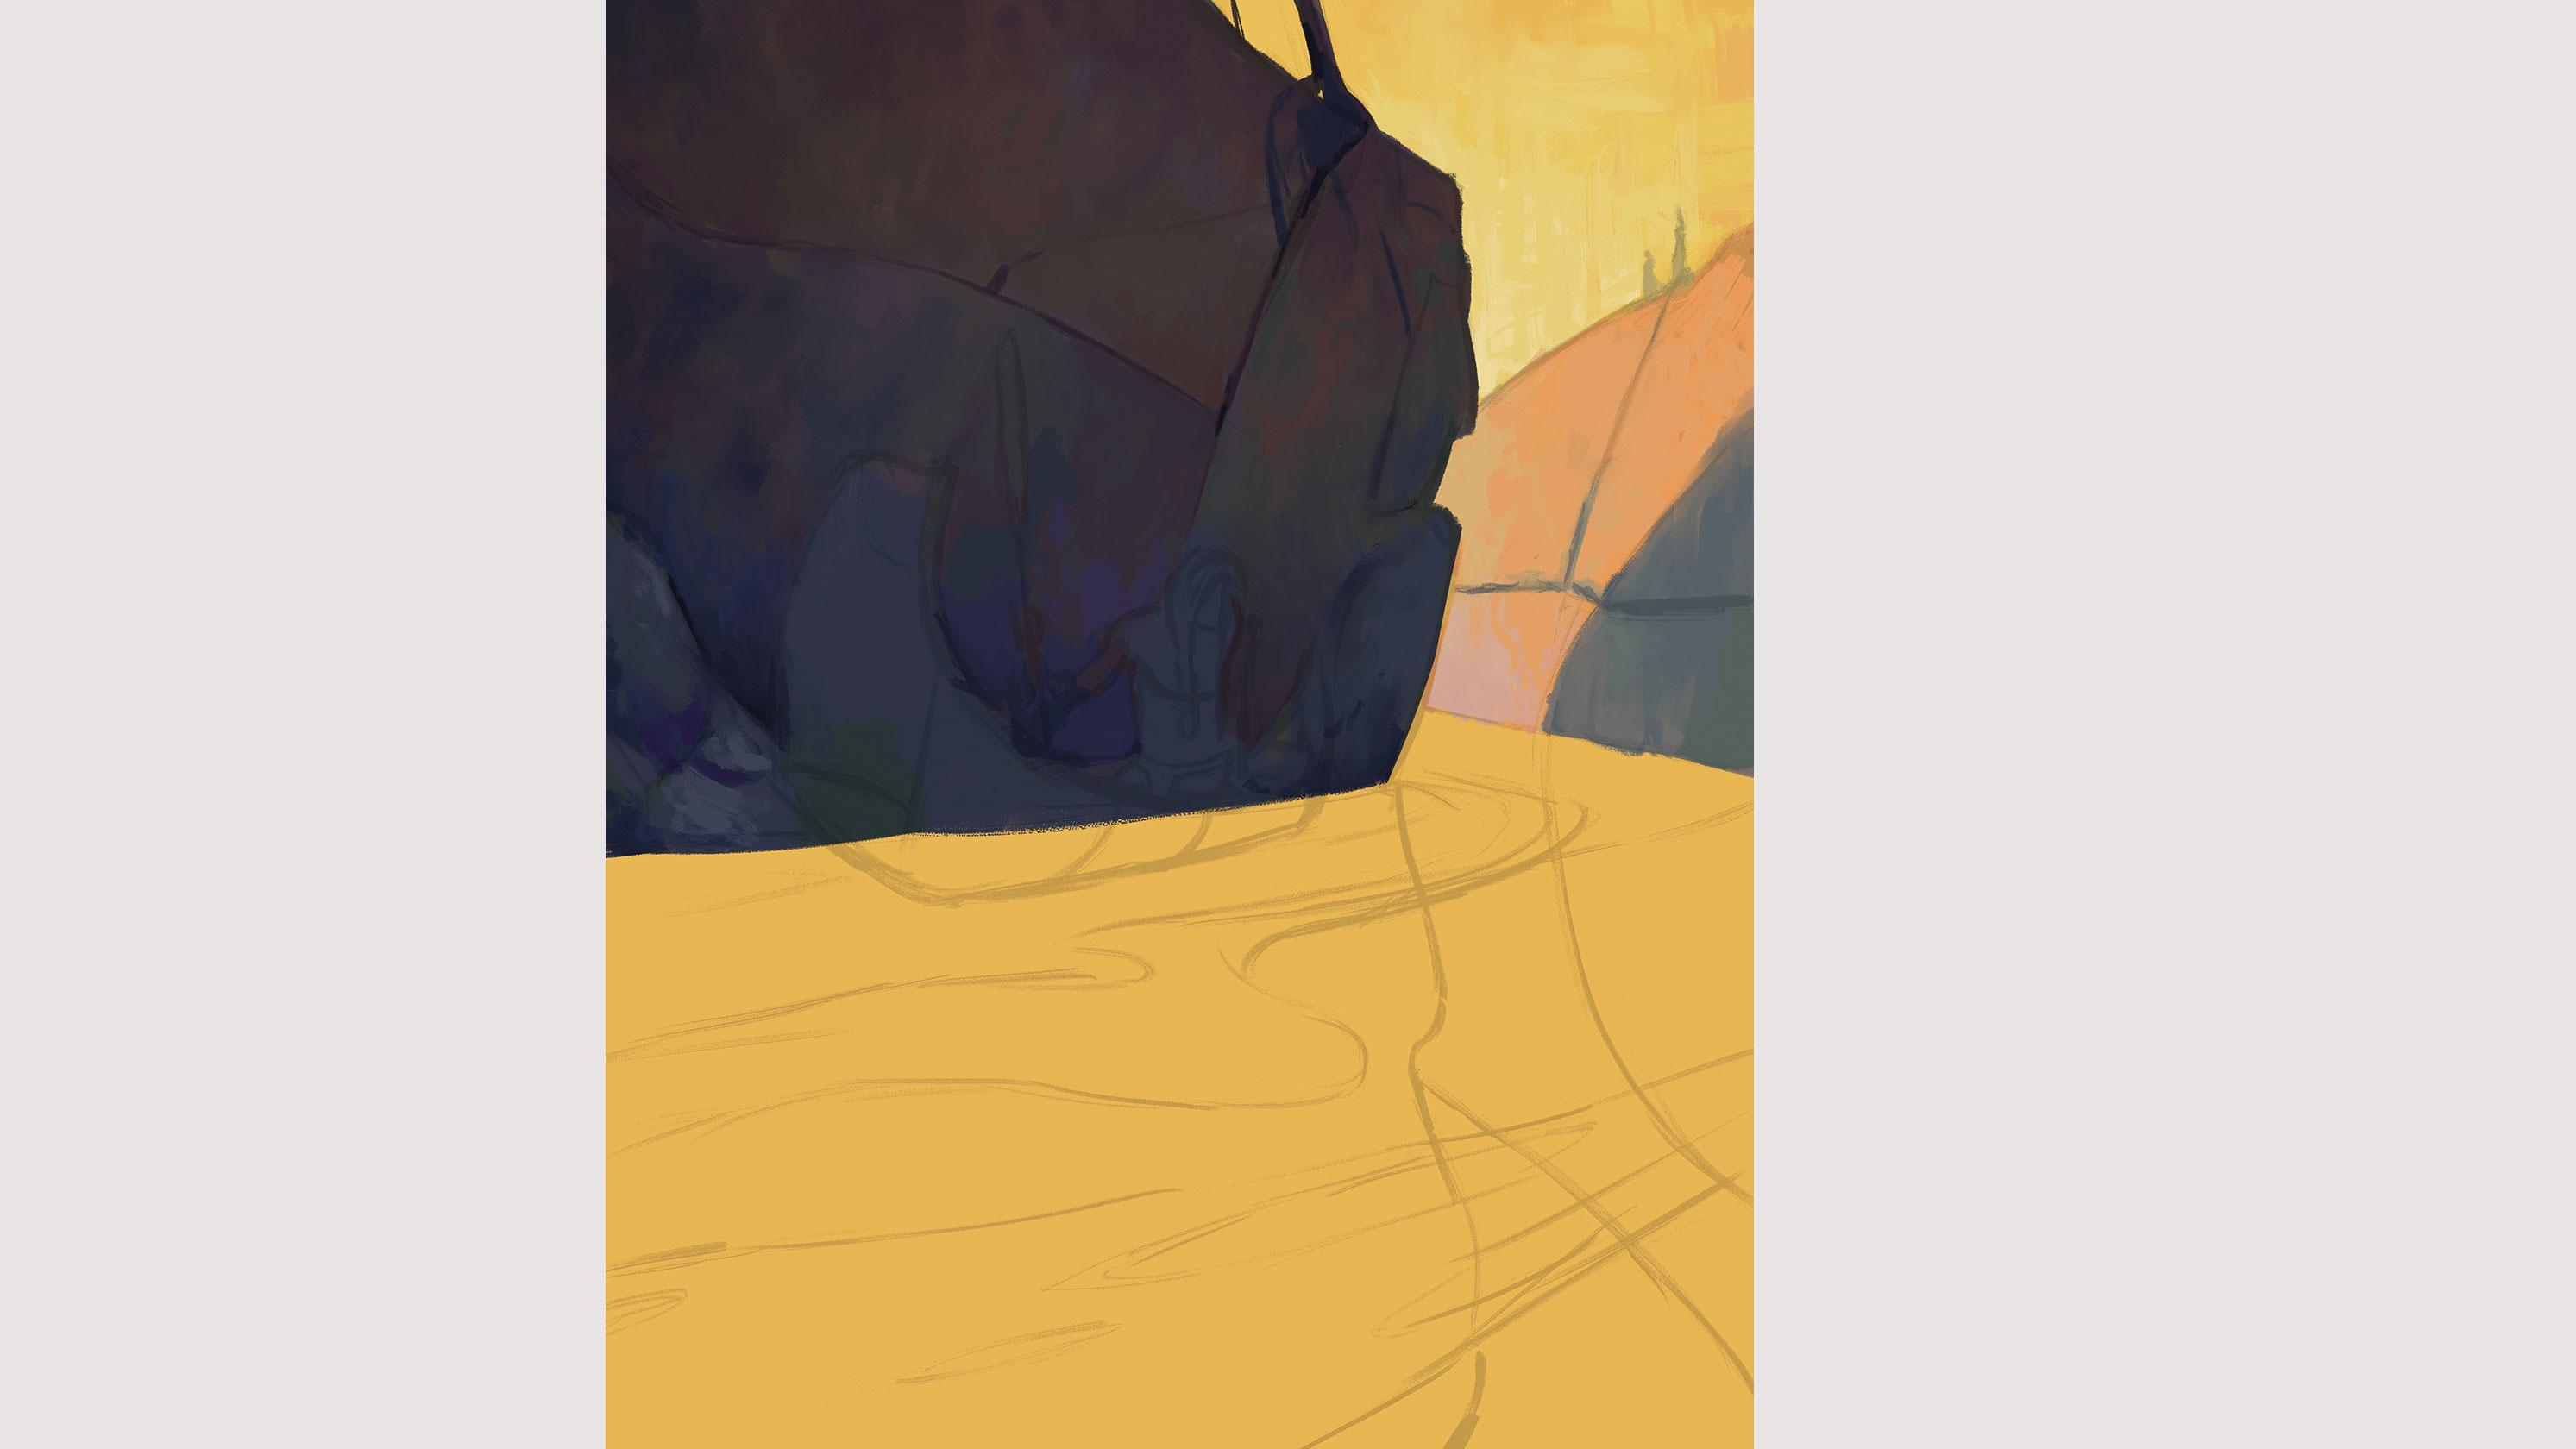 rocks in painting outline